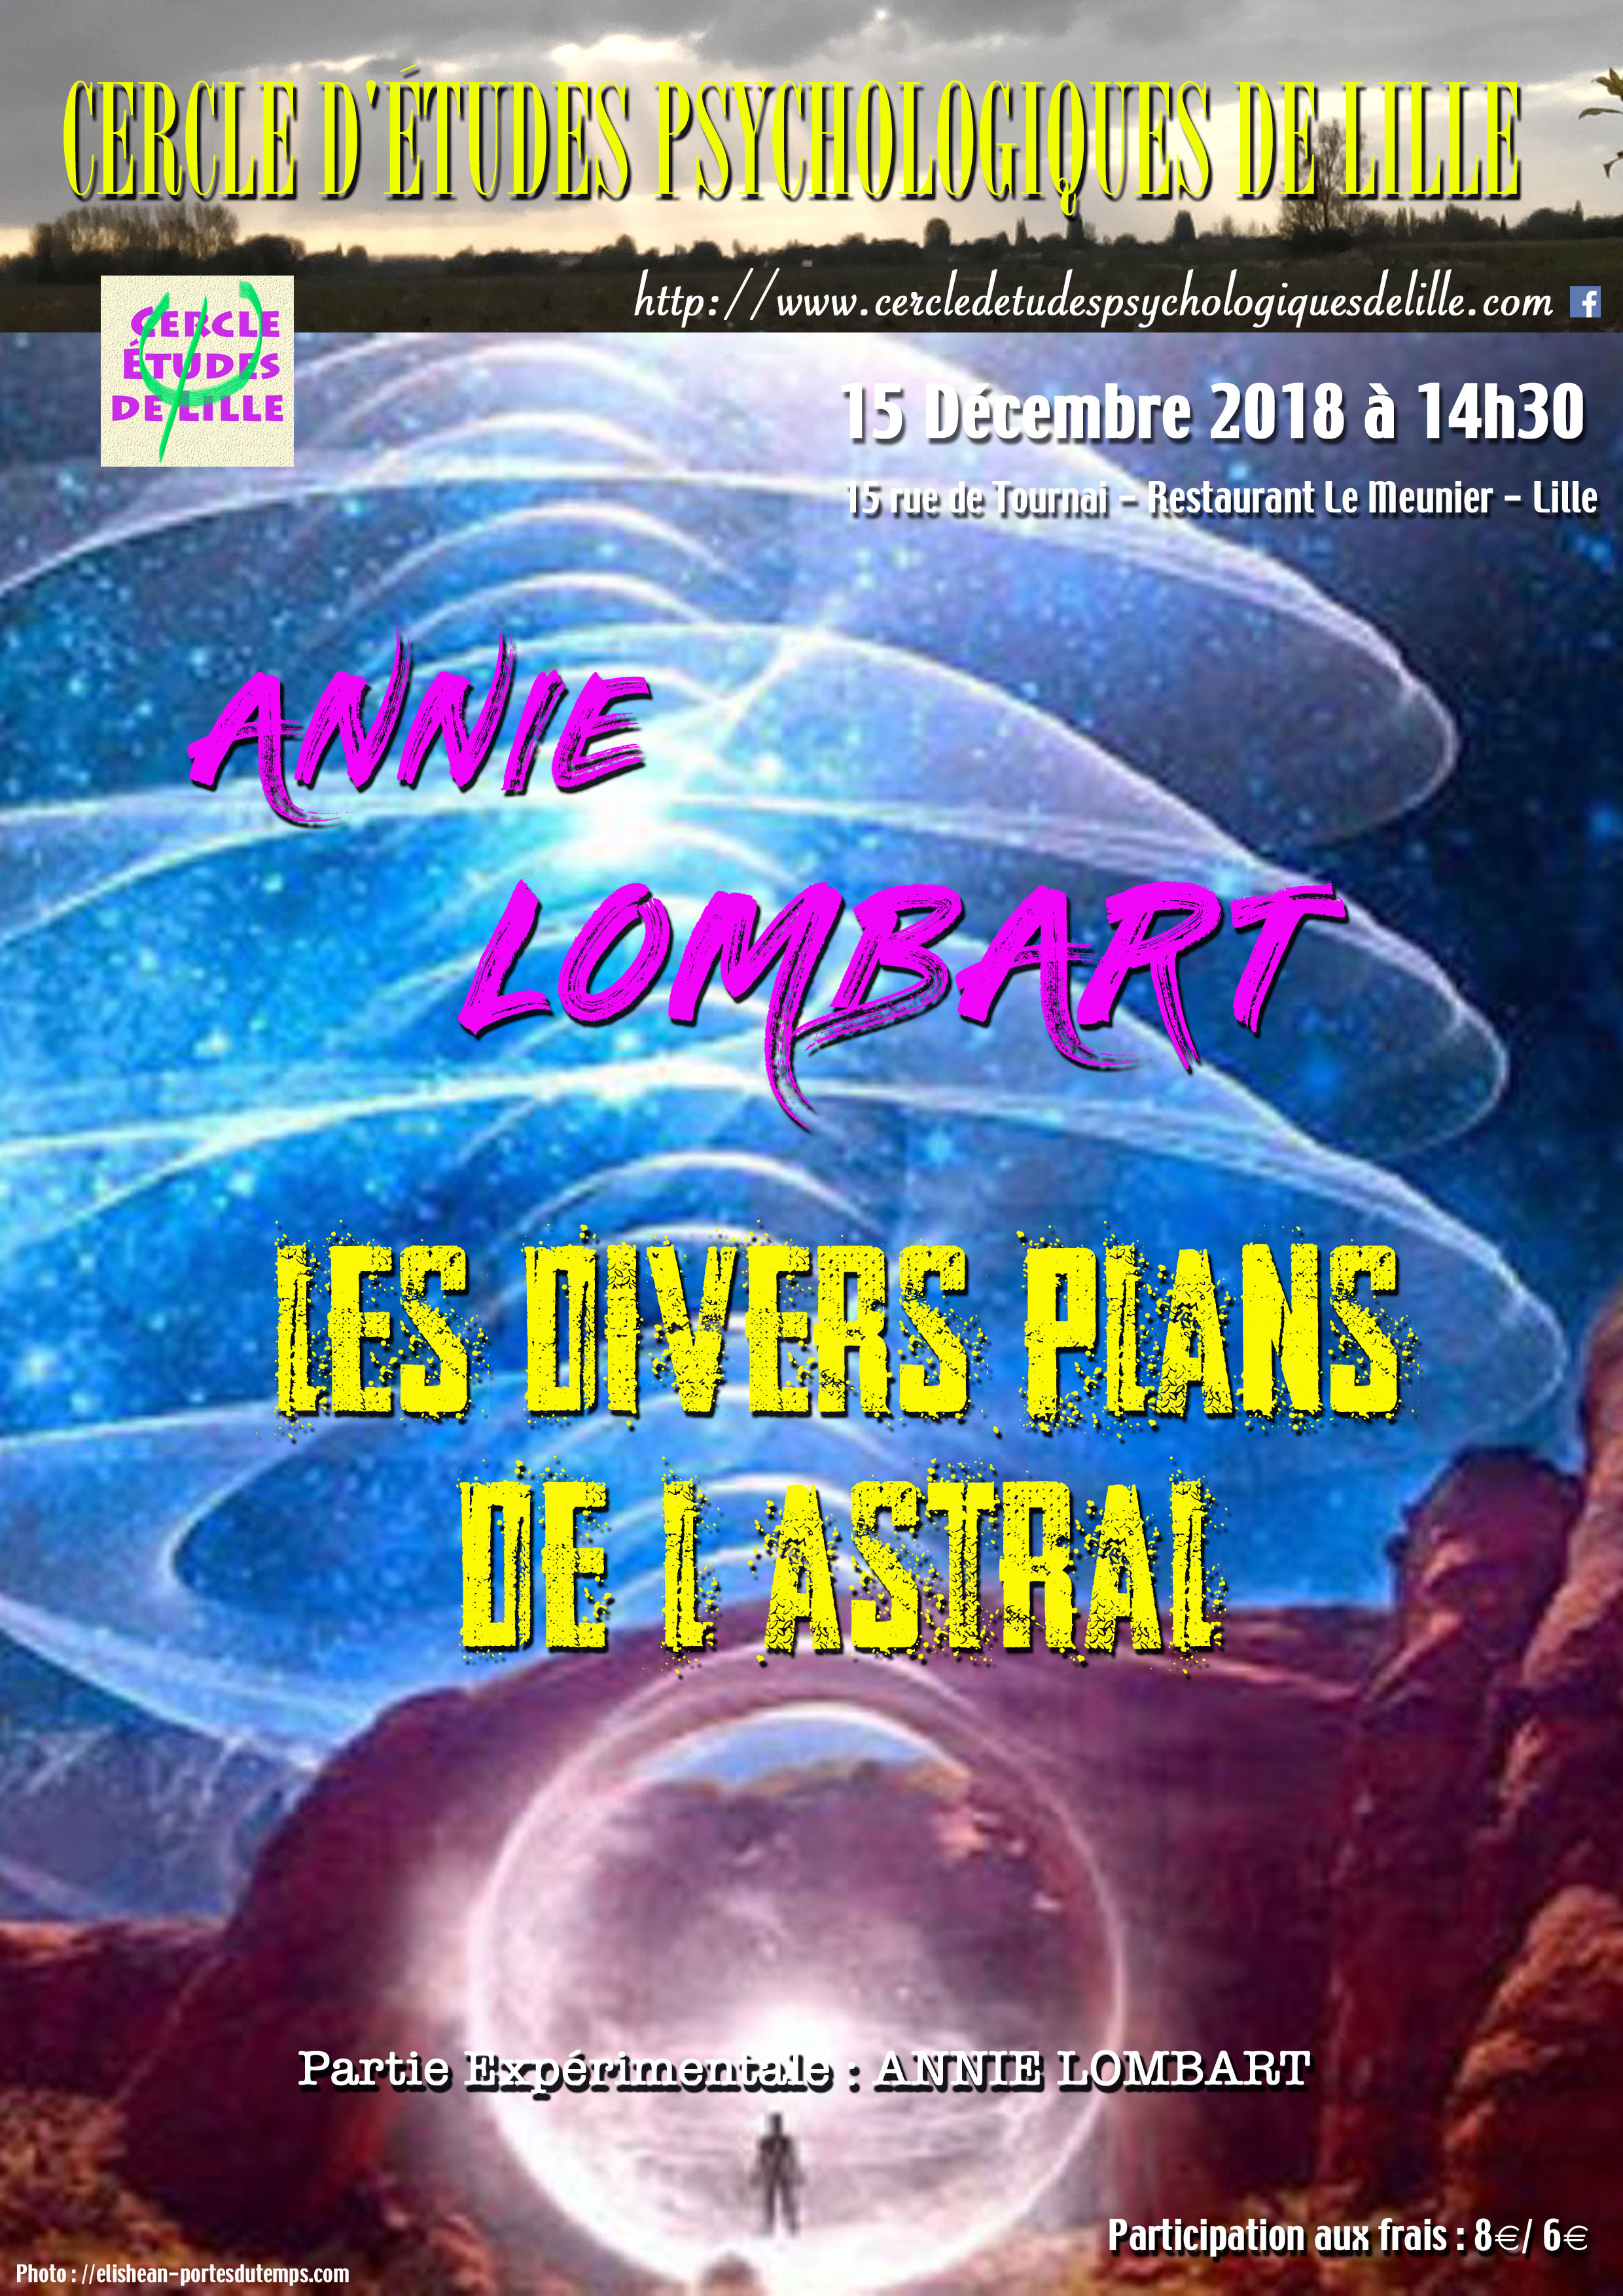 160Affiche-Lombart-Astral